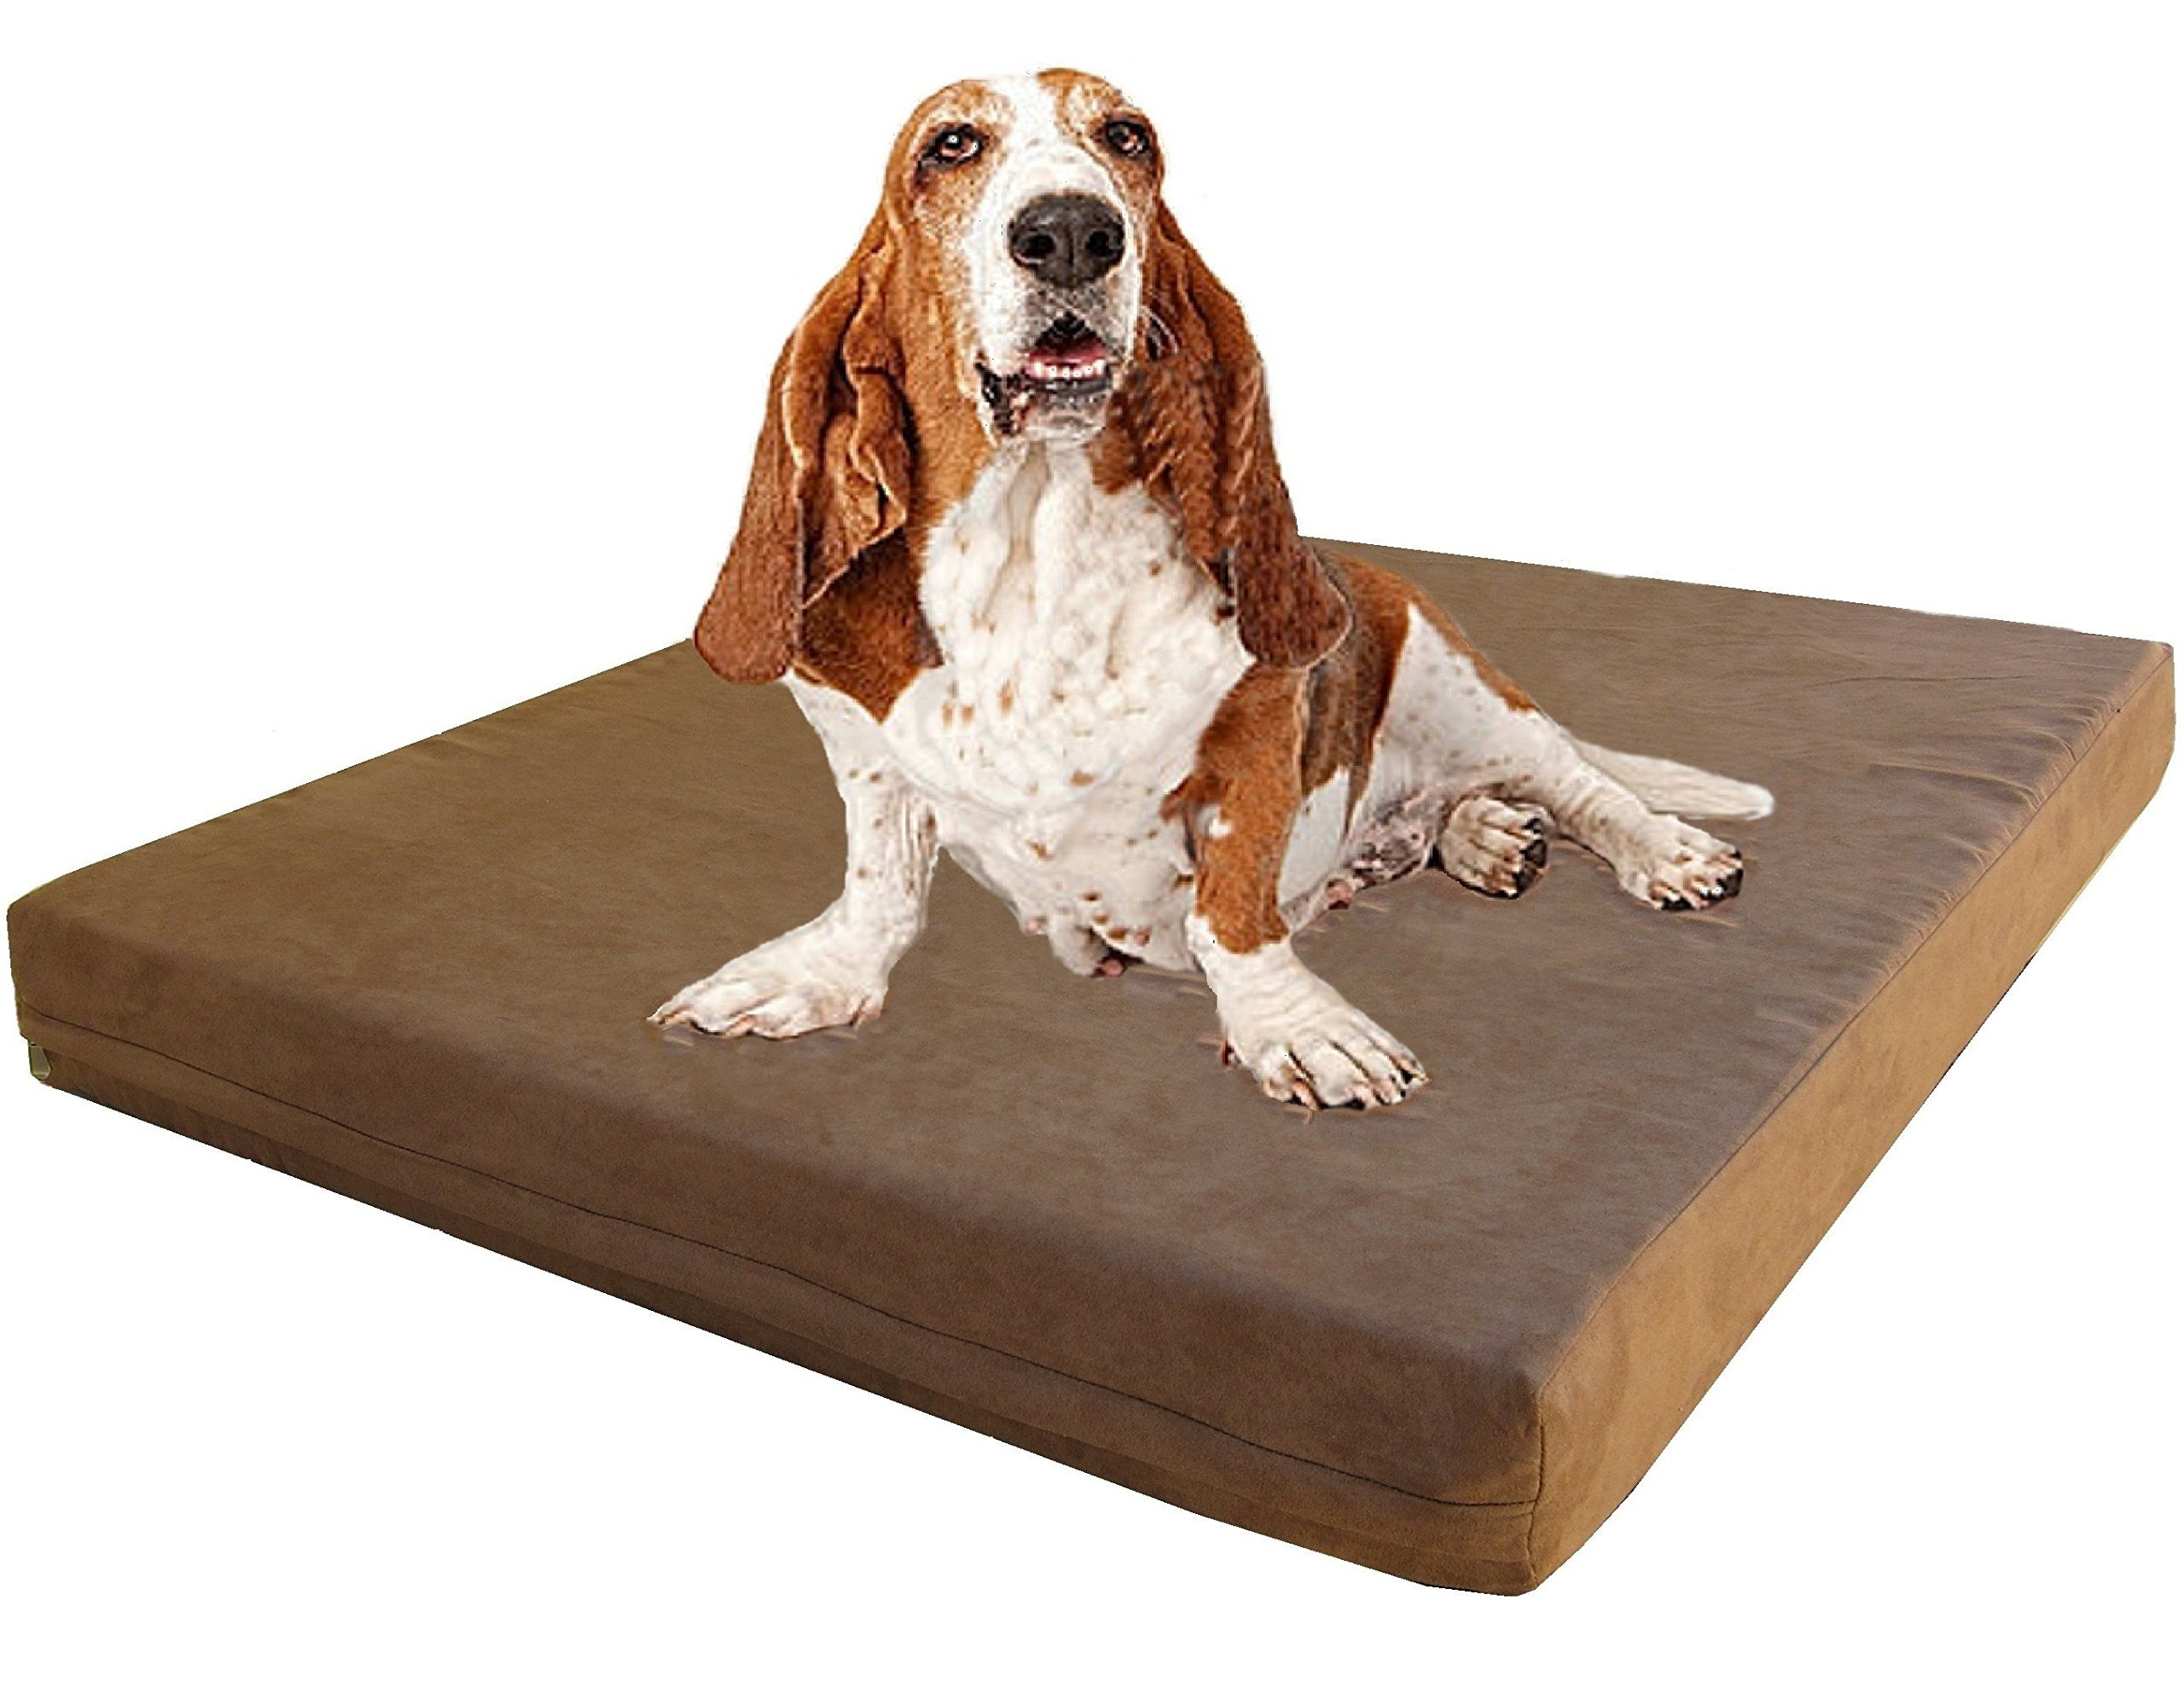 Dogbed4less Orthopedic Gel Infused Cooling Memory Foam Dog Bed For